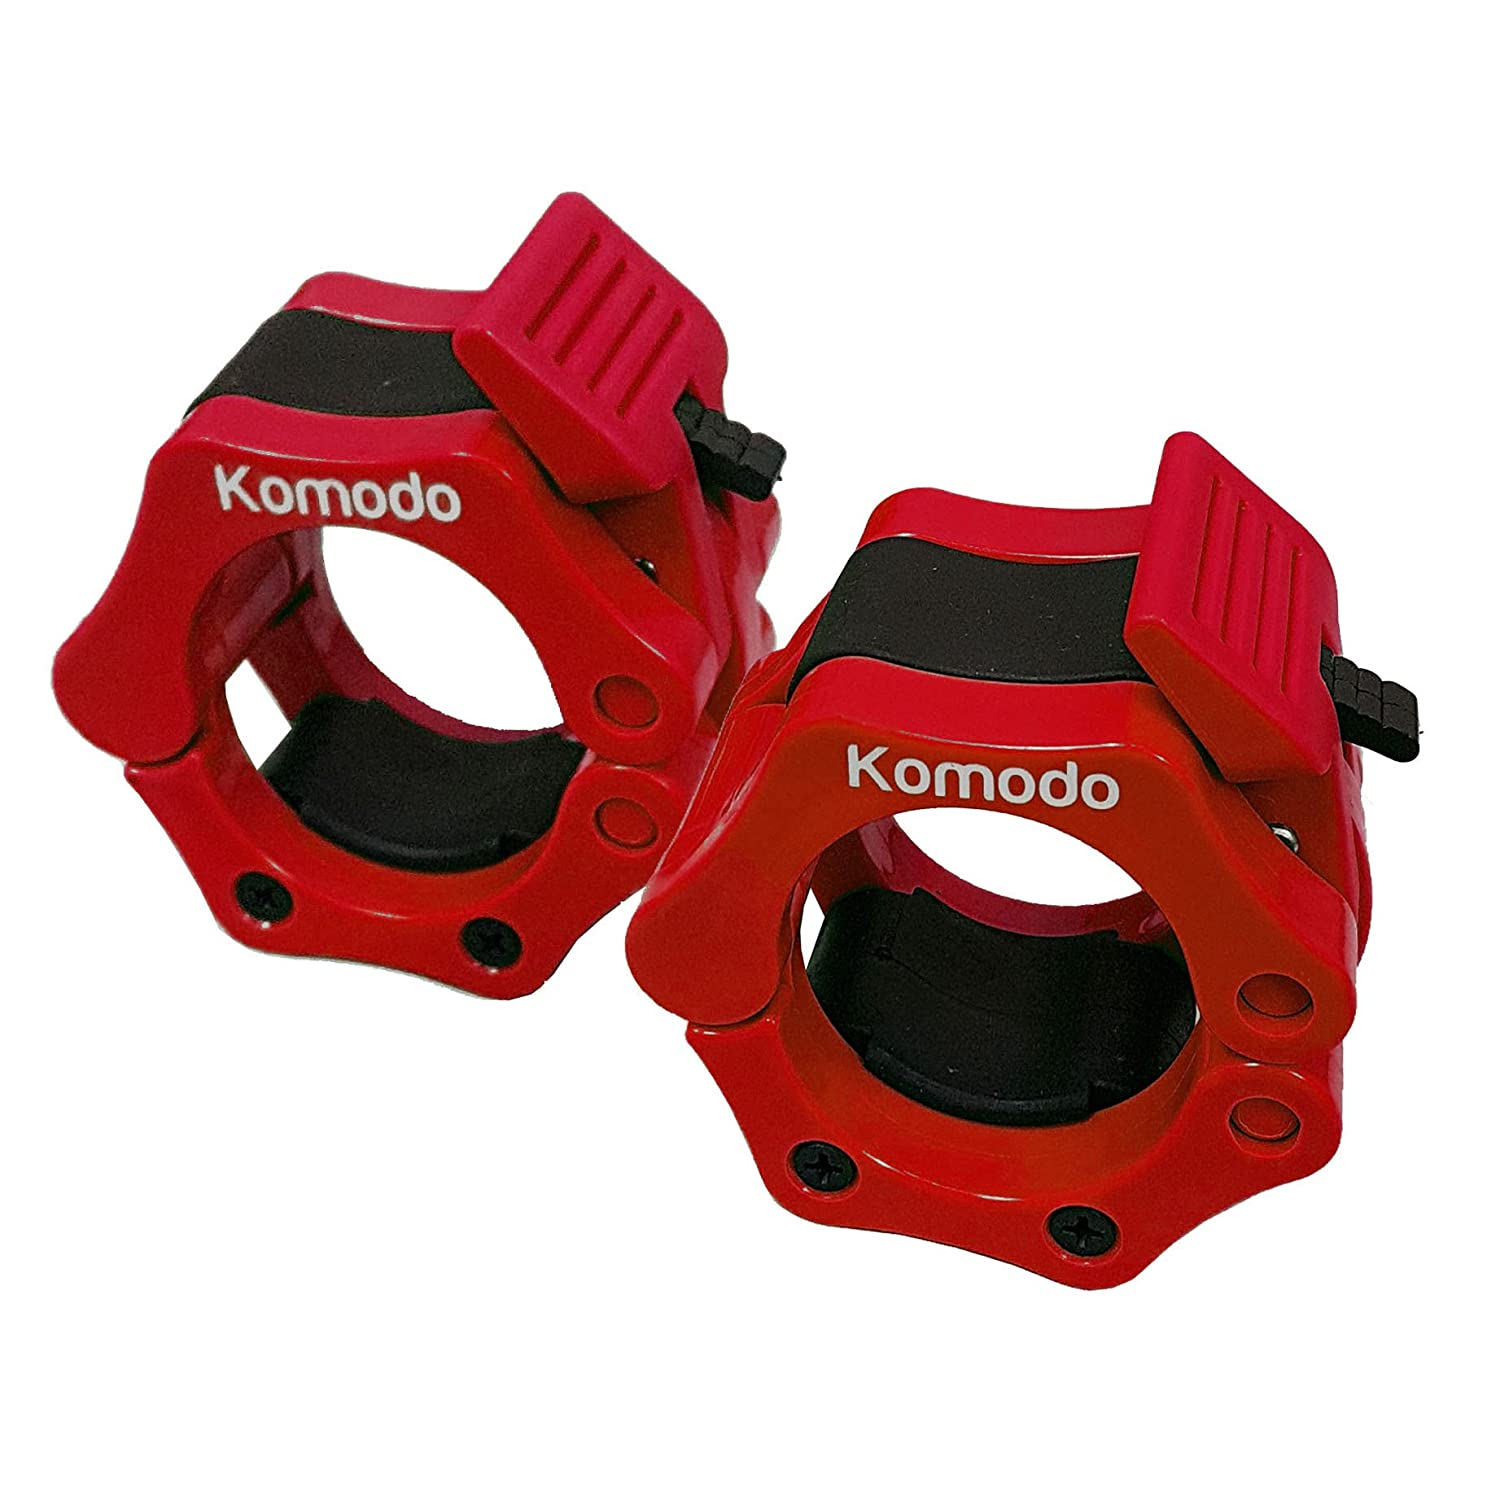 Komodo Olympic Barbell Collars 2 inch 50mm Dumbell Bar Clamps Weight Lifting